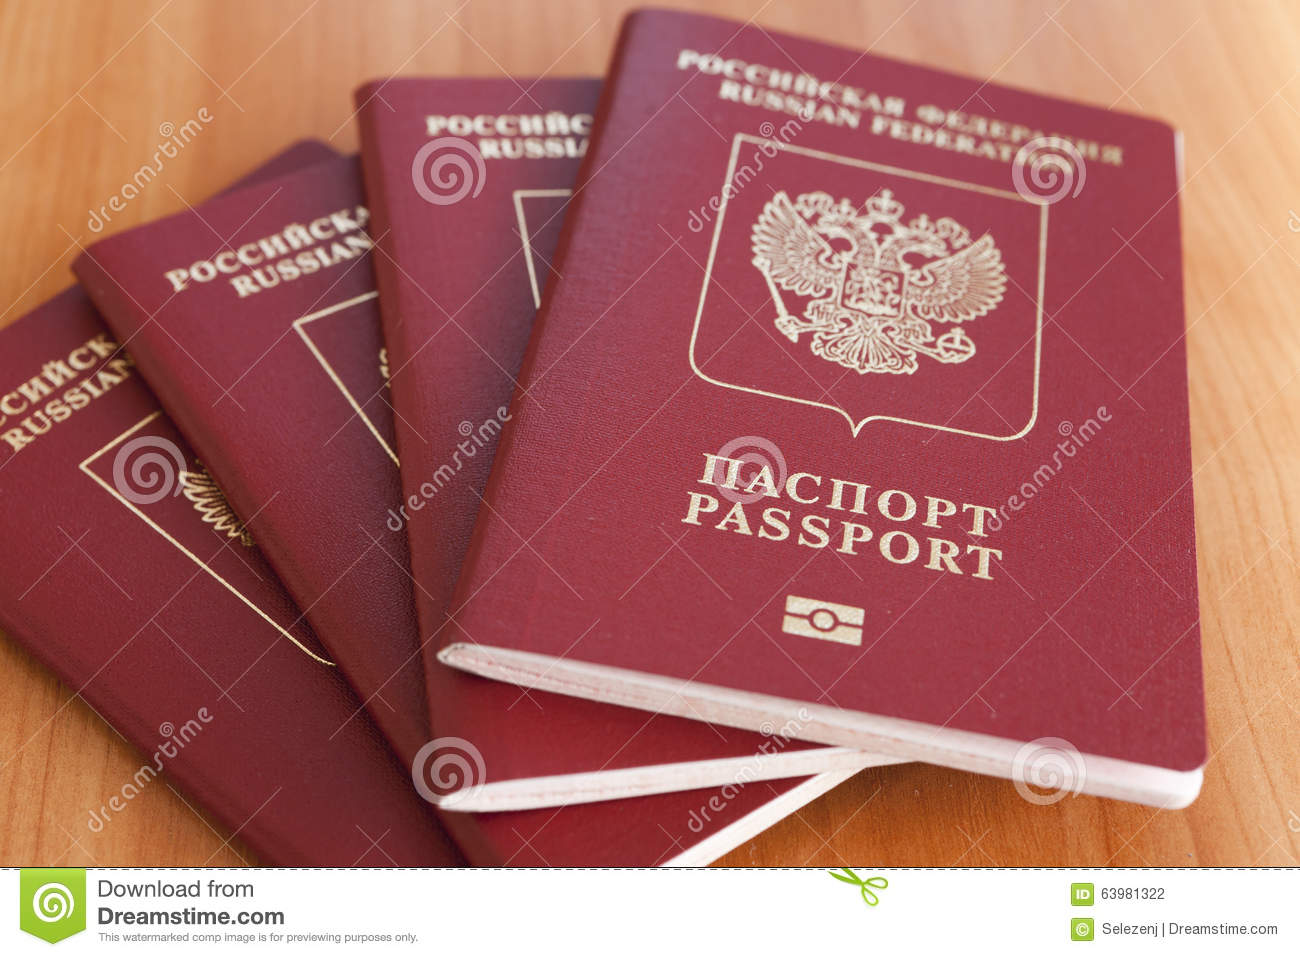 Passports on a table stock photo. Image of object, card ...